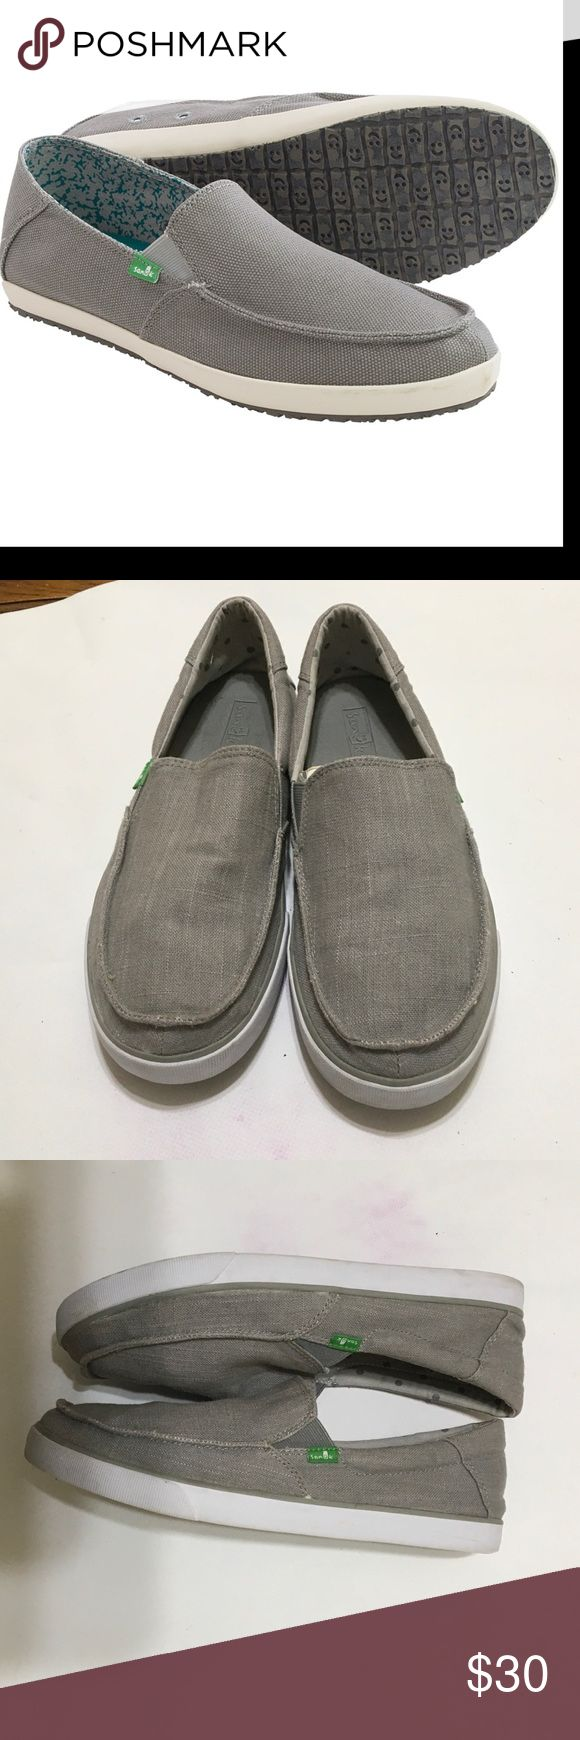 Sanuk canvas for men sz10 Sanuk grey canvas shoes for men sz10 in like new condition only worn once sanuk Shoes Loafers & Slip-Ons